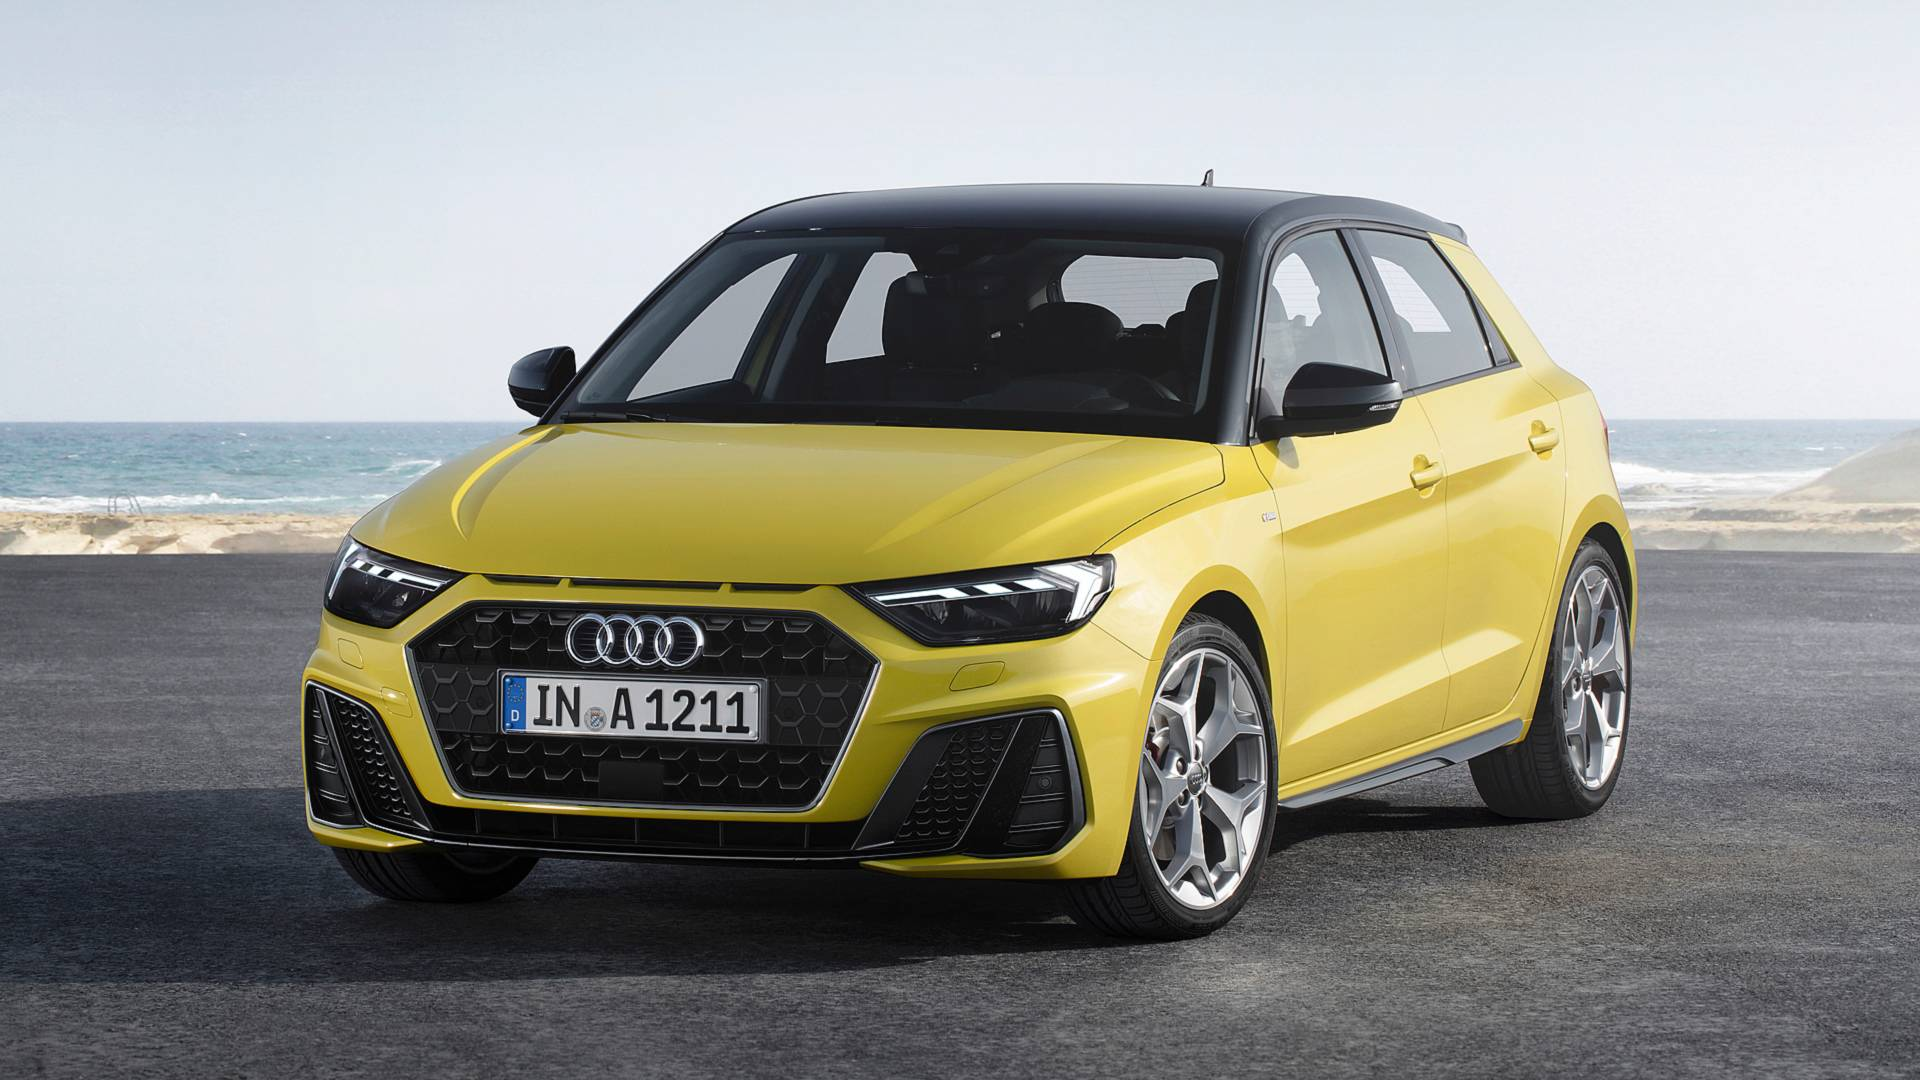 2019 Audi A1 Sportback Revealed 40 Tfsi Boasts 2 0 Liter